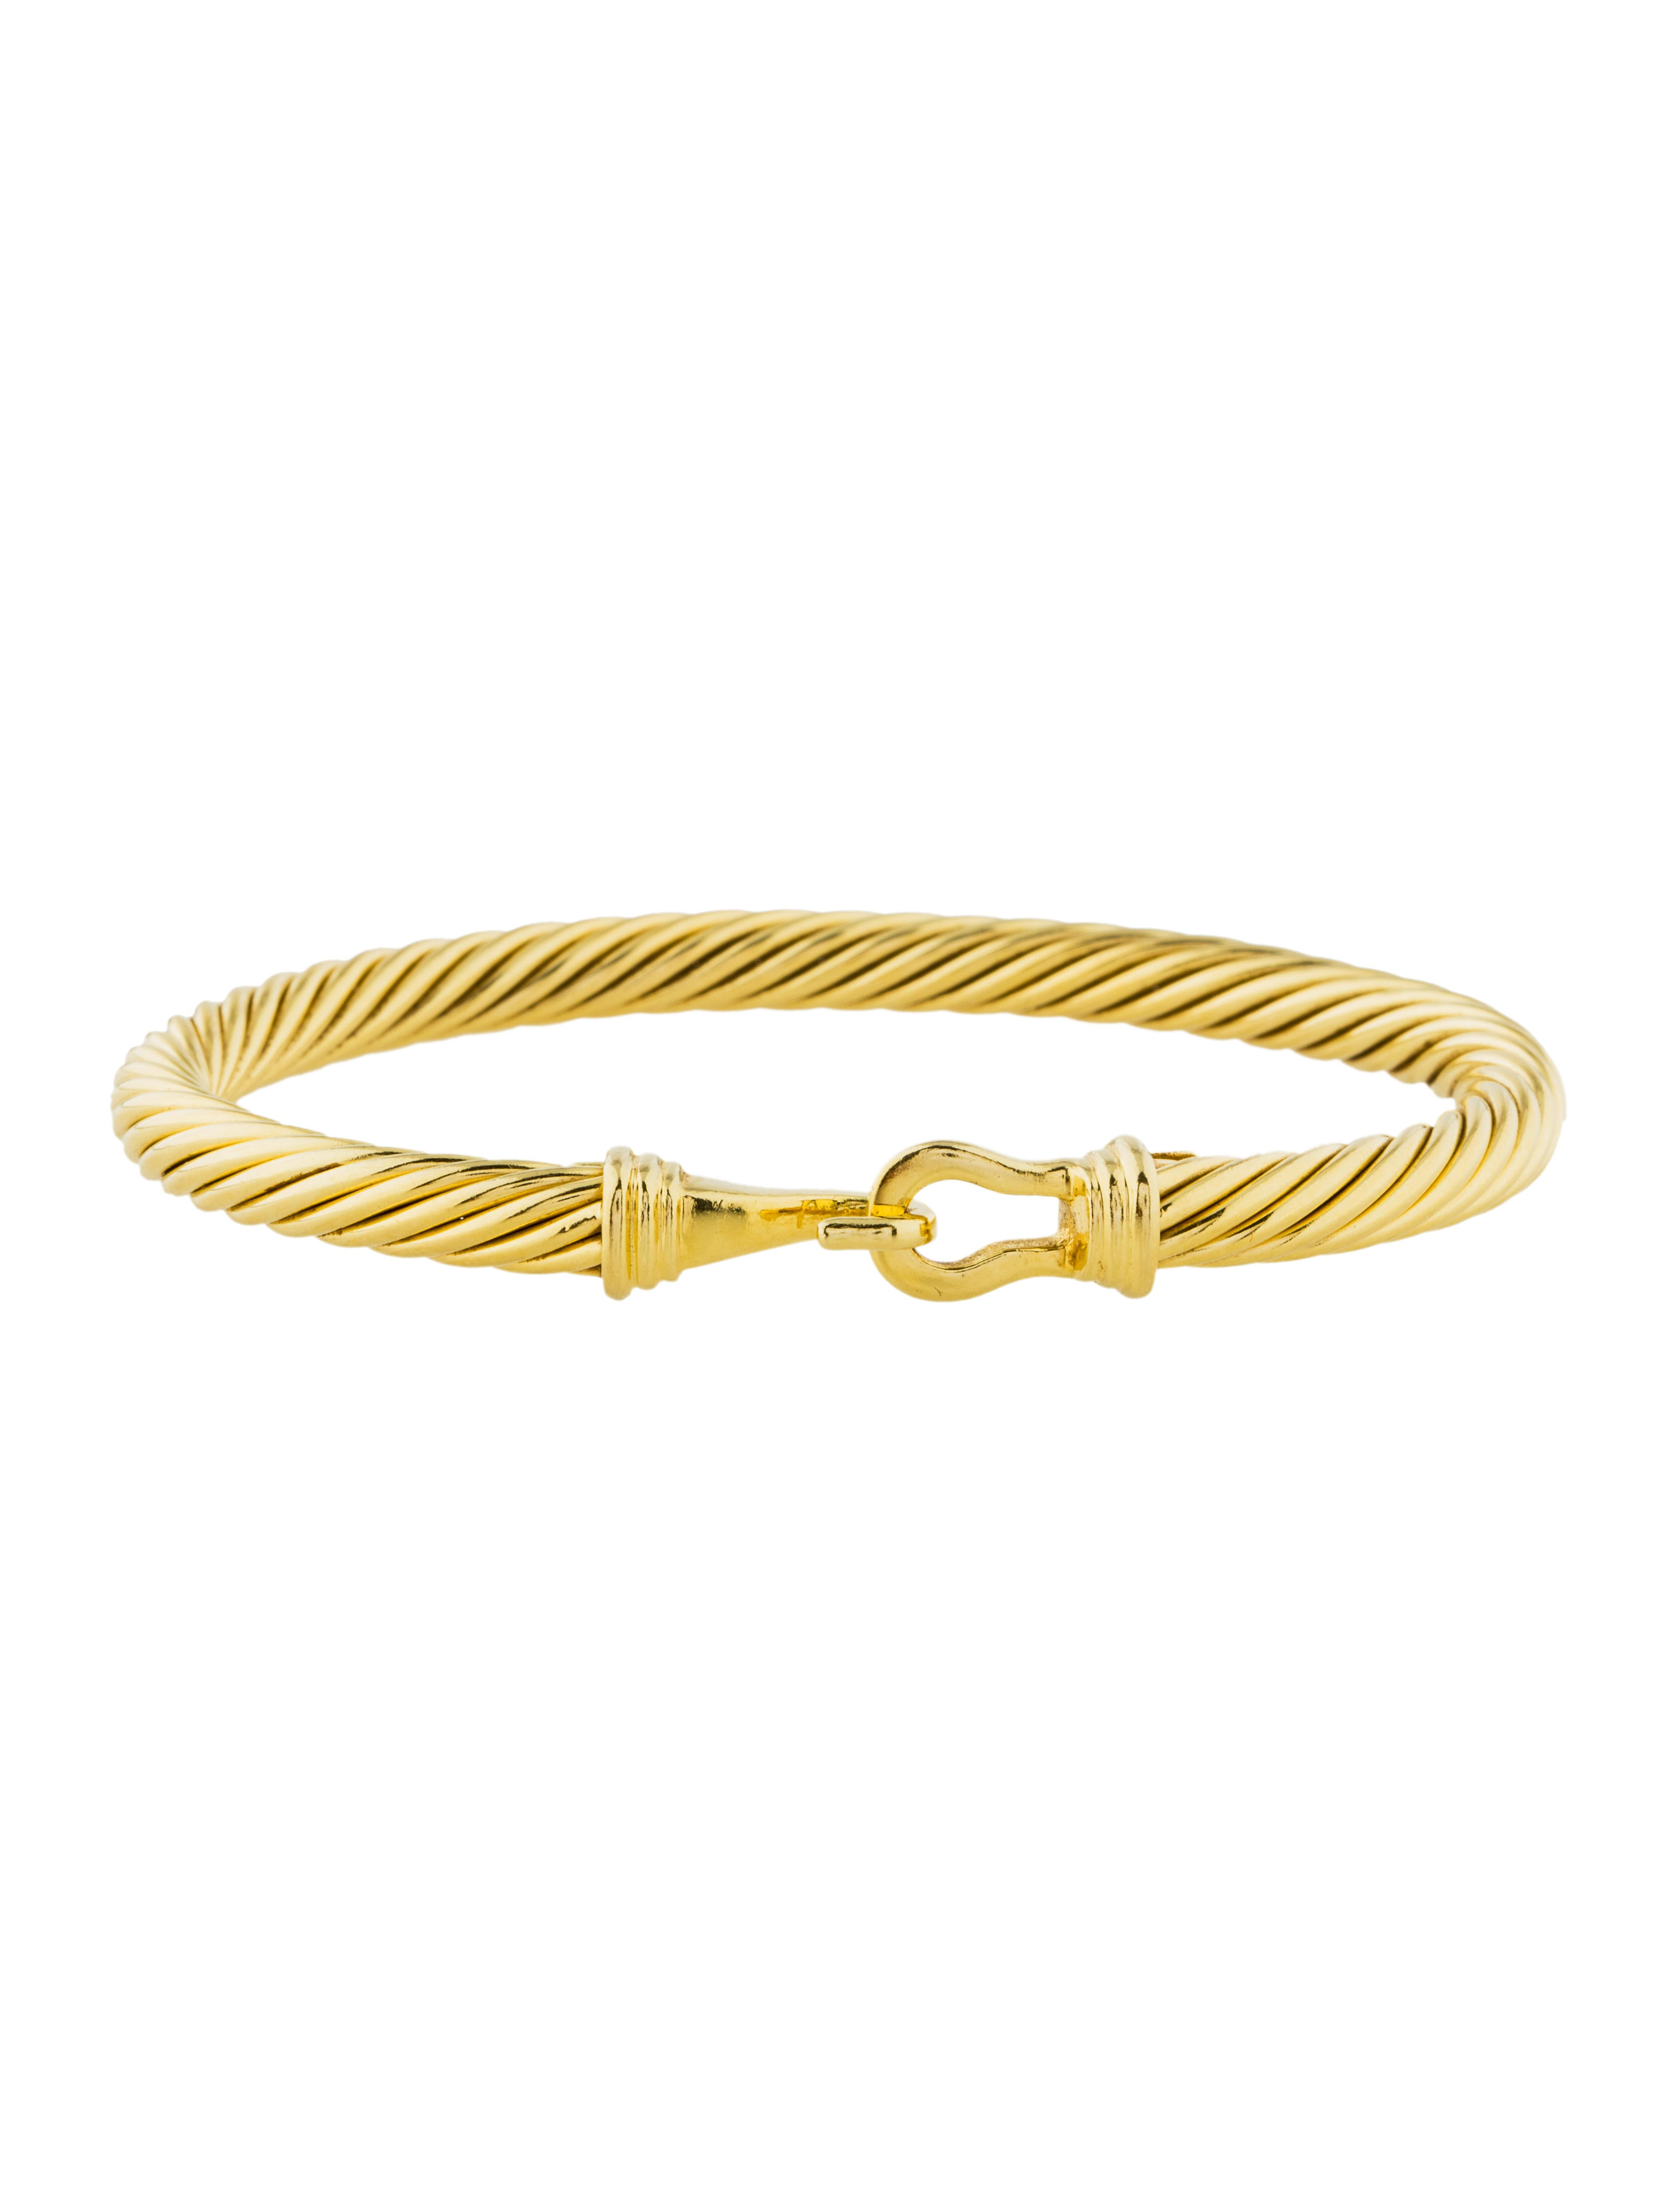 David yurman 18k cable classic buckle bracelet bracelets for David yurman inspired bracelet cable